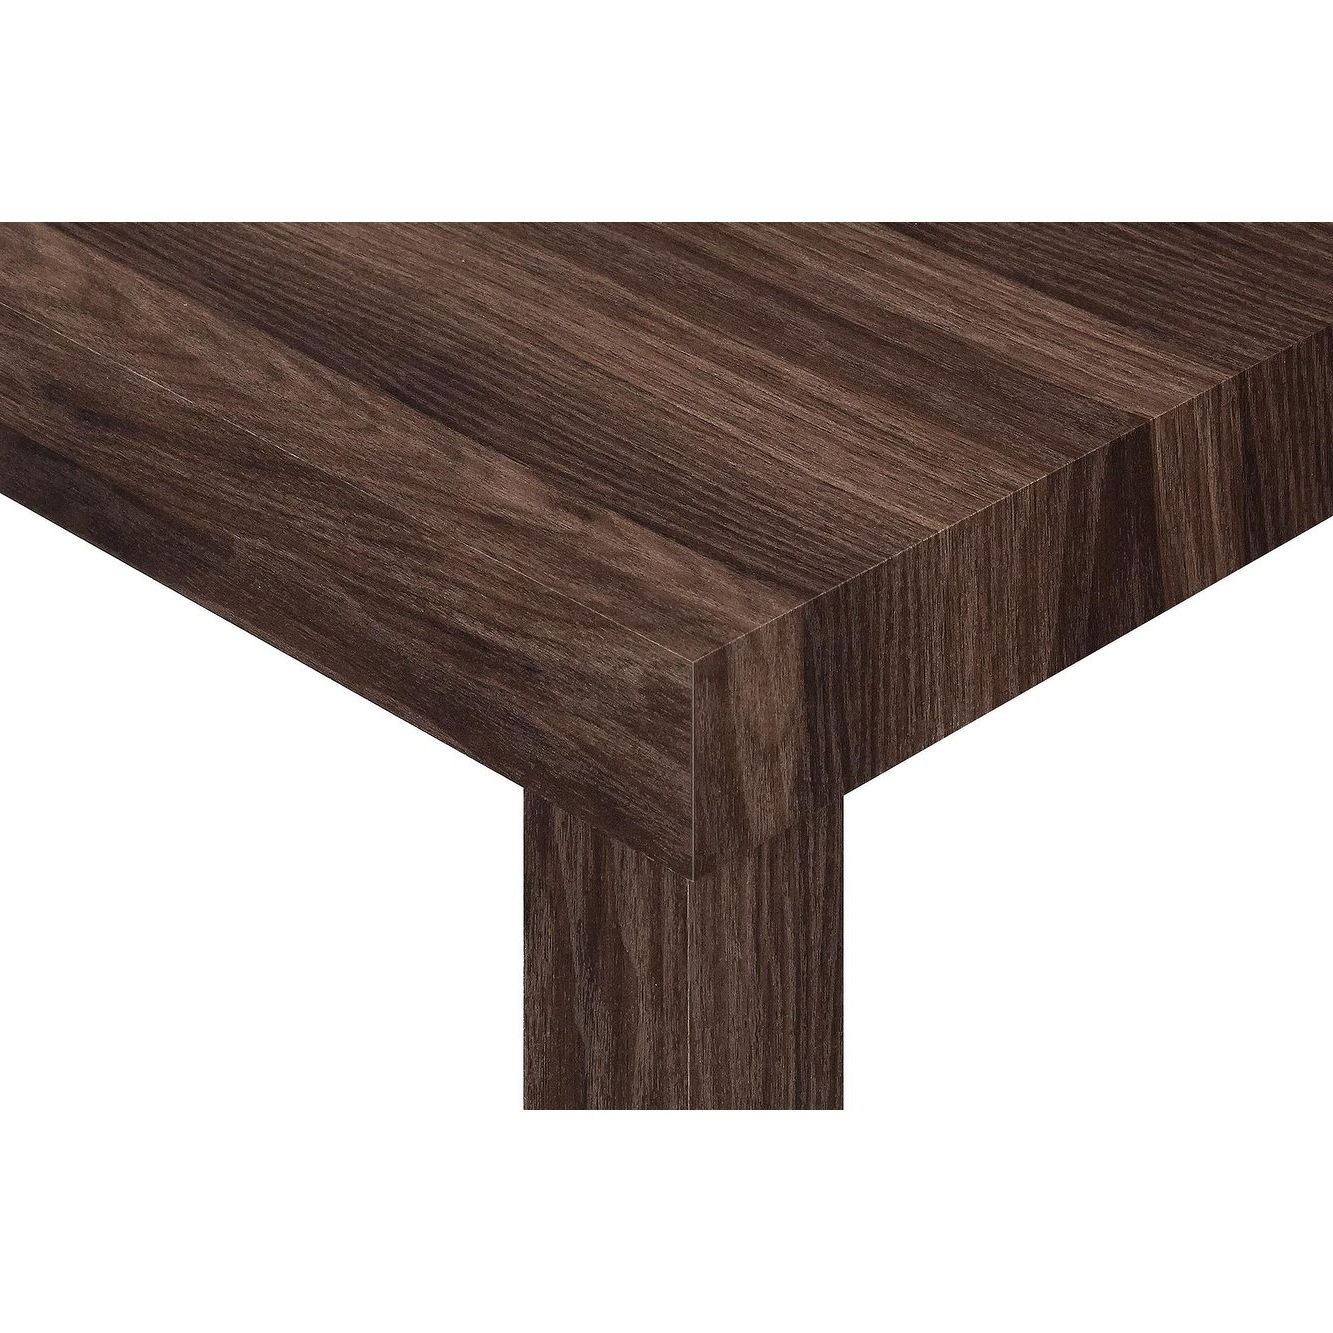 Shop Avenue Greene Jaxon Walnut Coffee Table – Free Shipping Today Throughout Trendy Jaxon Cocktail Tables (View 17 of 20)